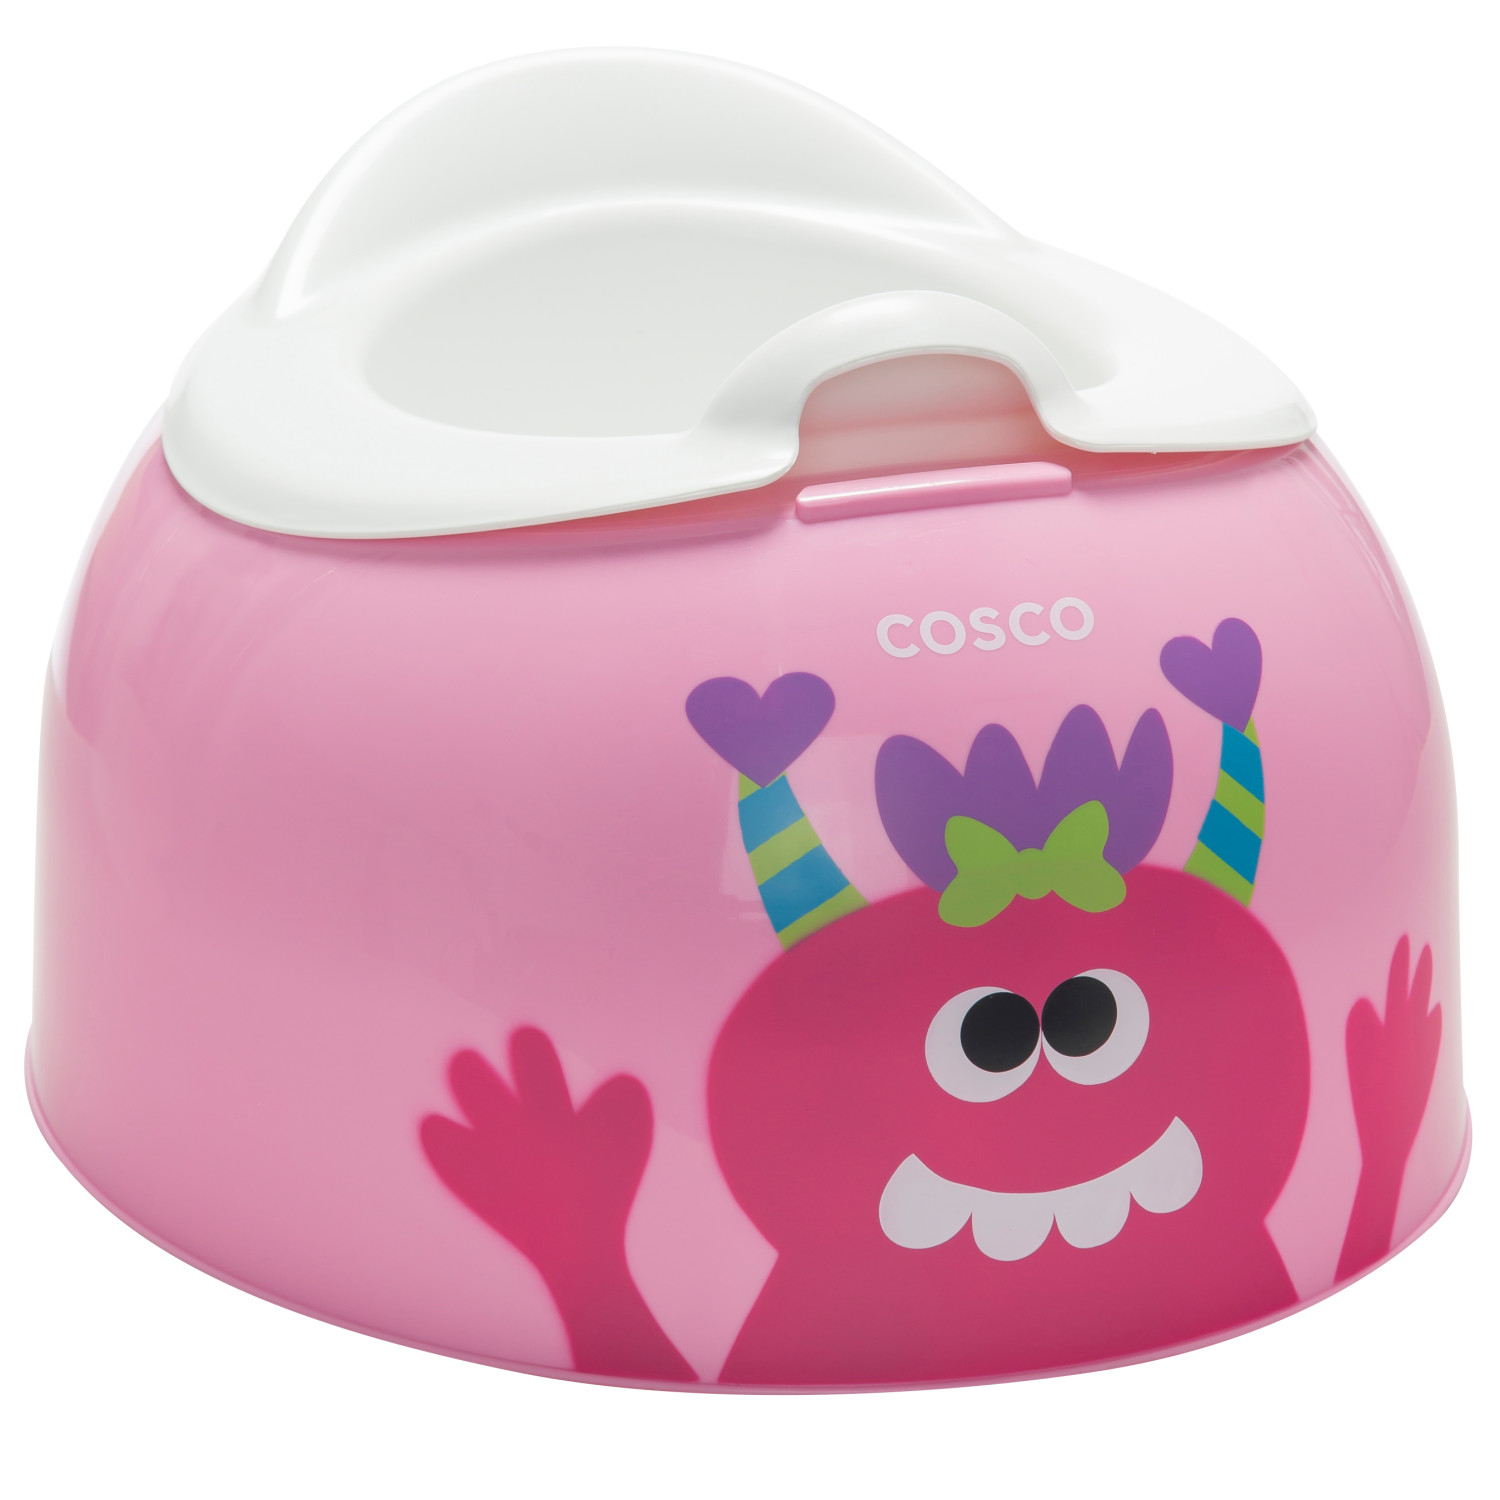 Cosco-Simple-Start-Potty thumbnail 7